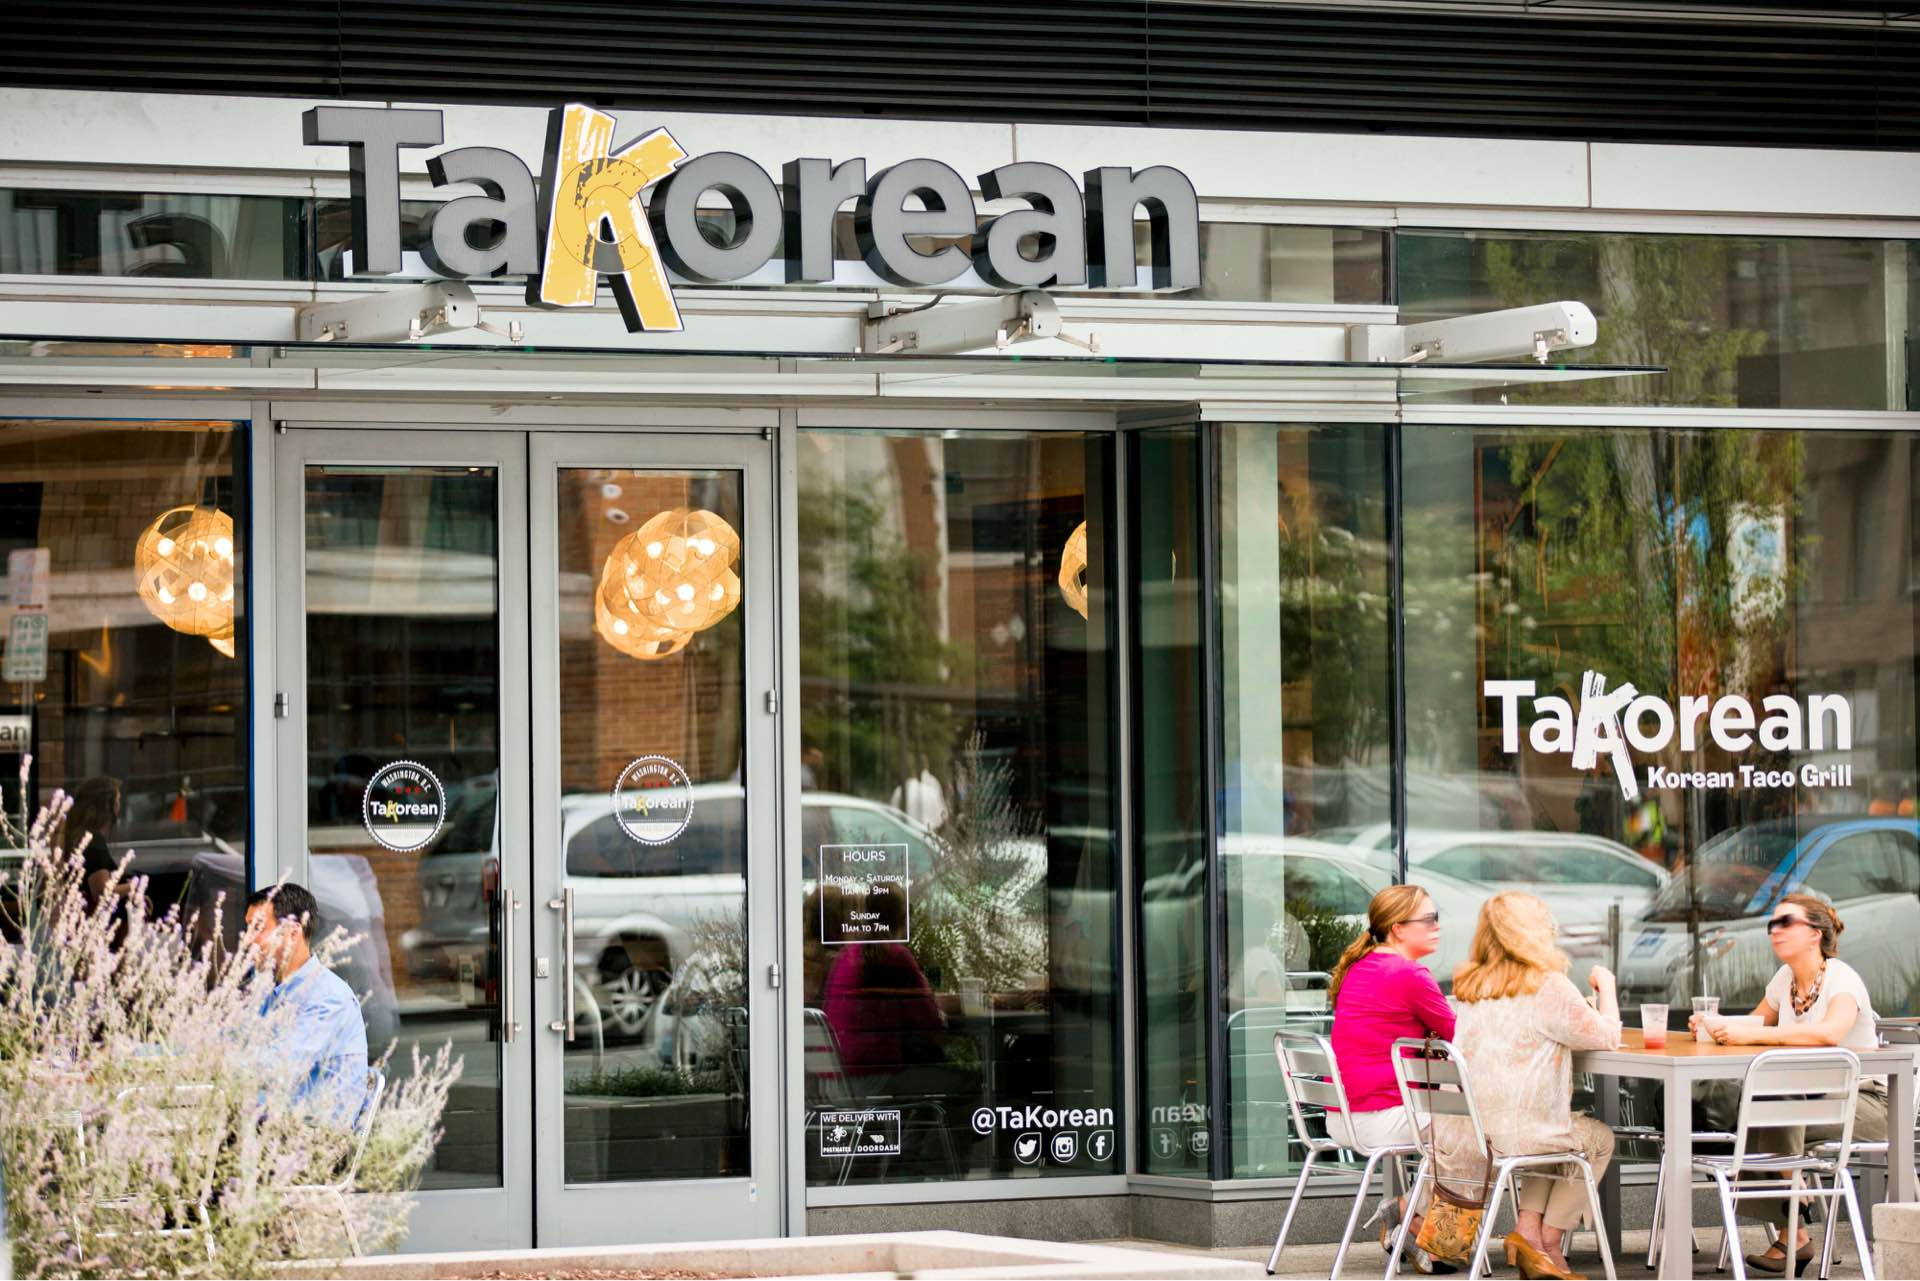 Walk to TakoRean, a DC dining hotspot.